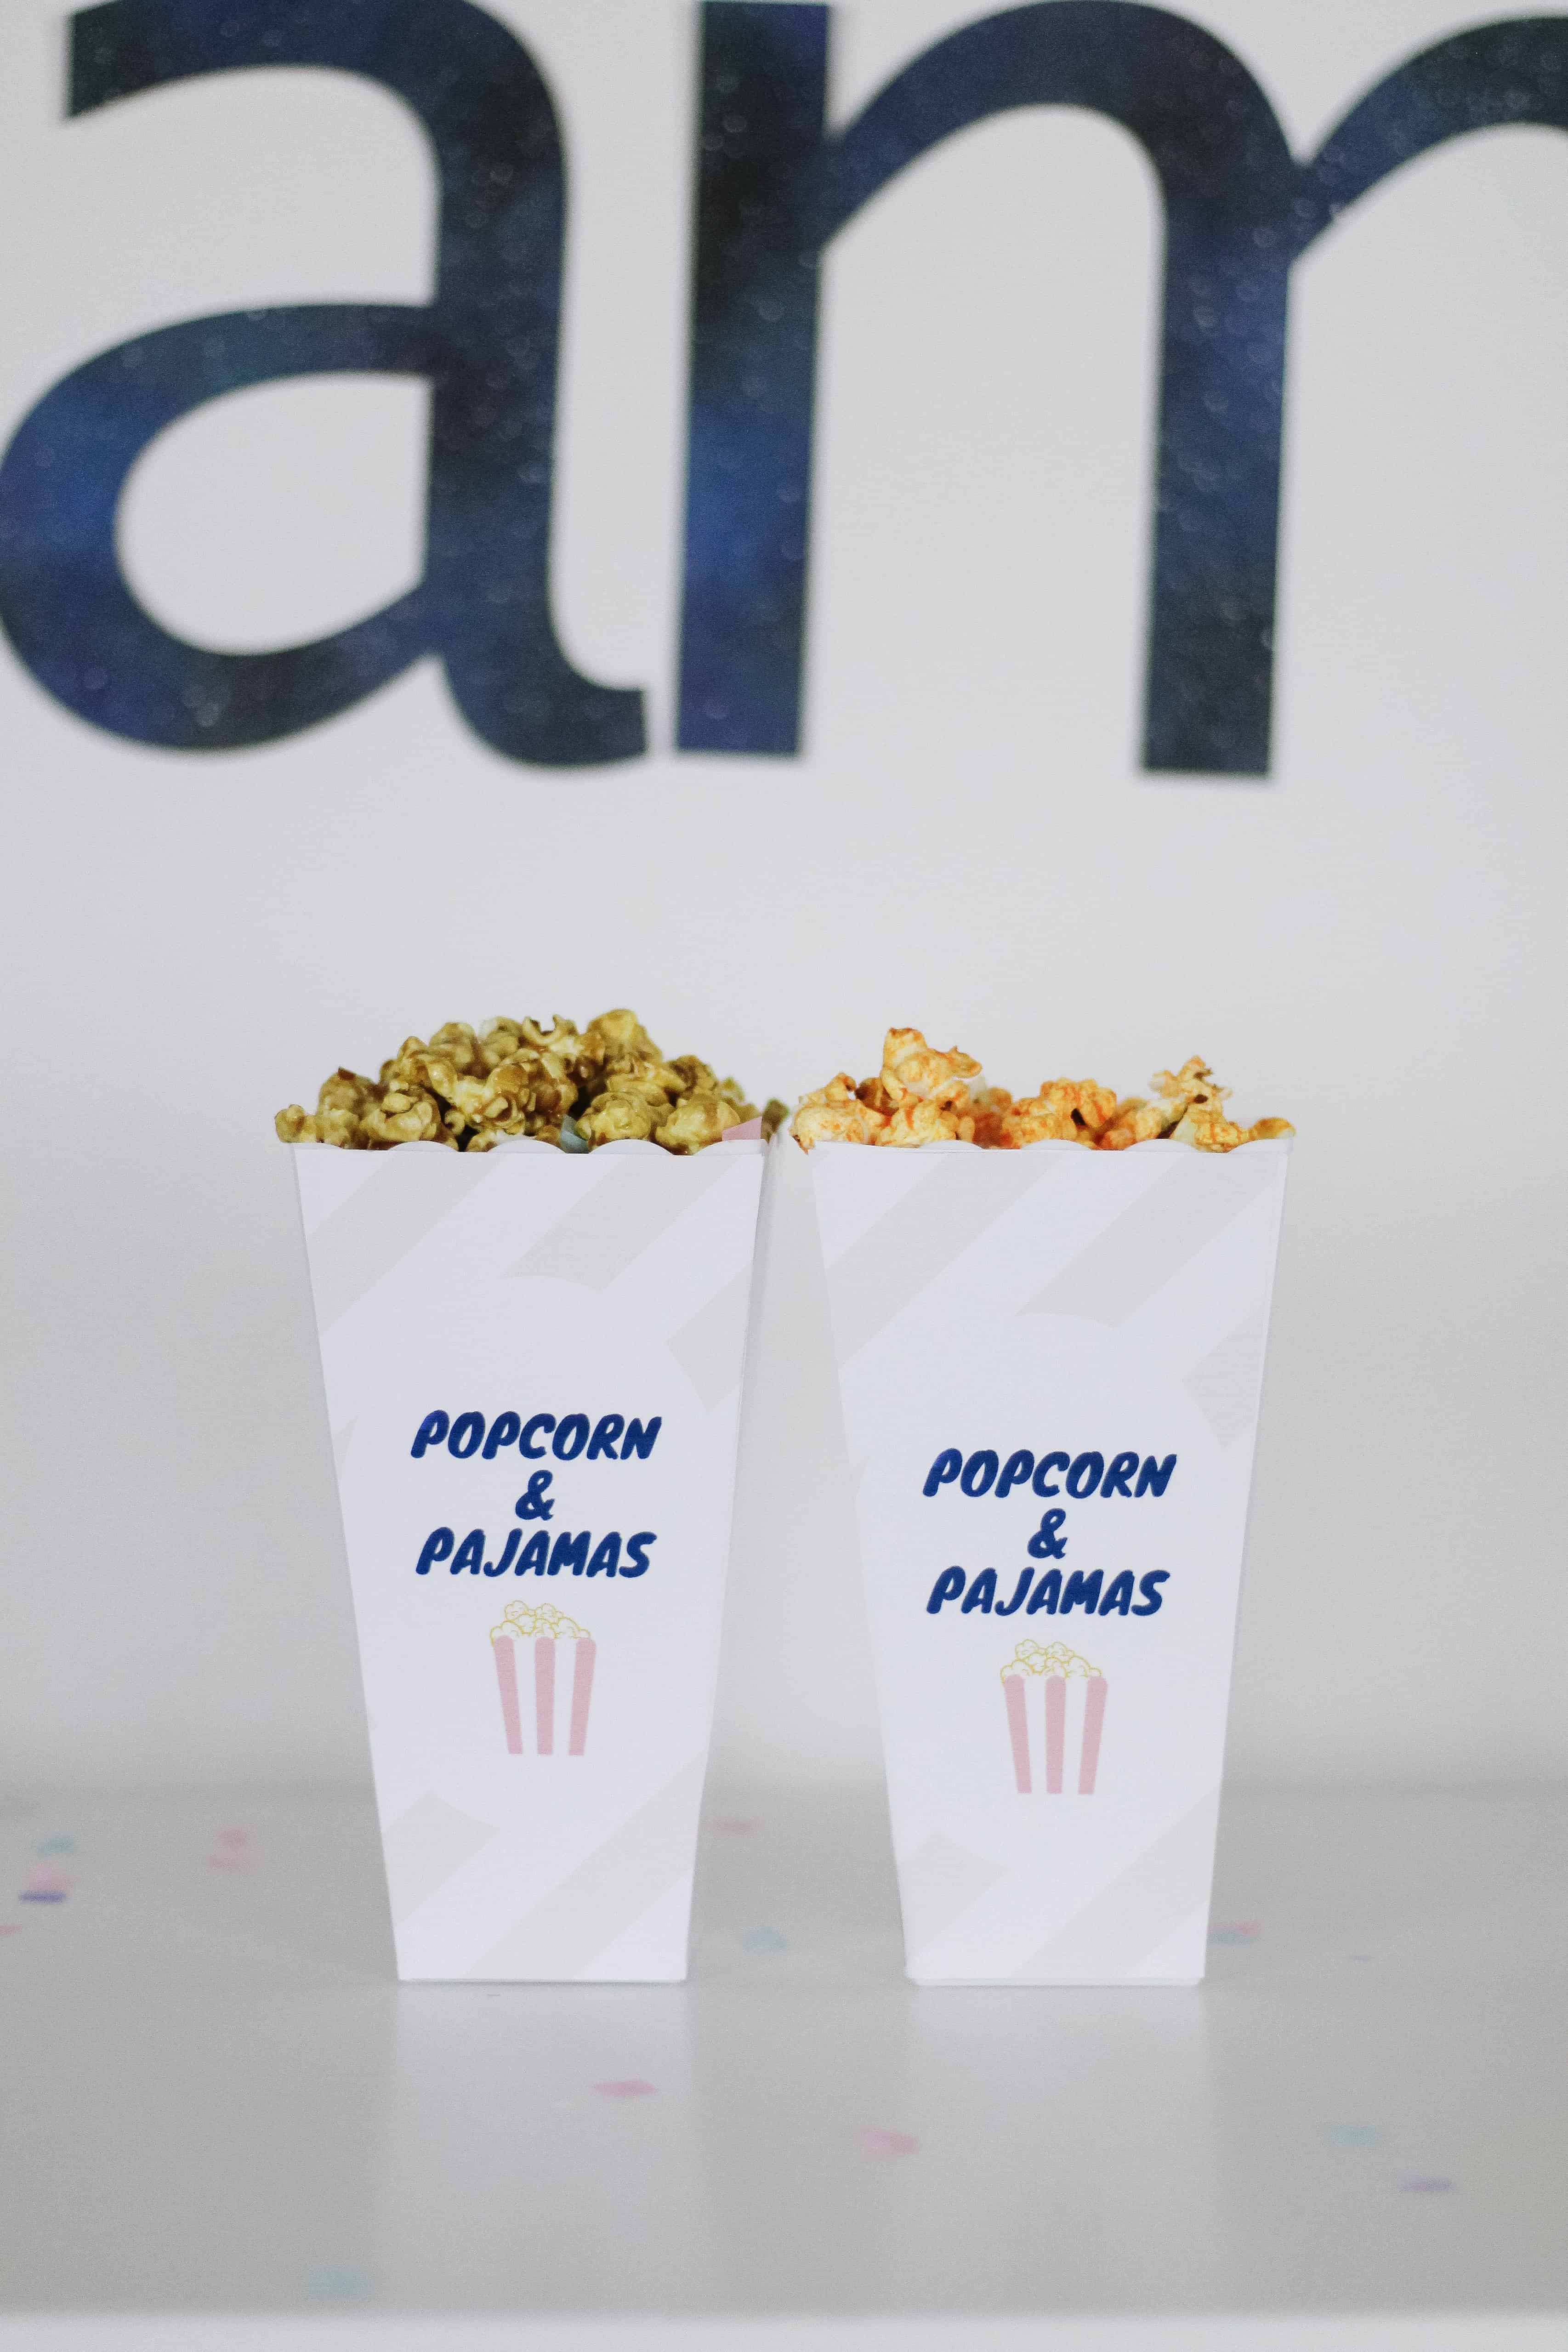 Pink popcorn containers